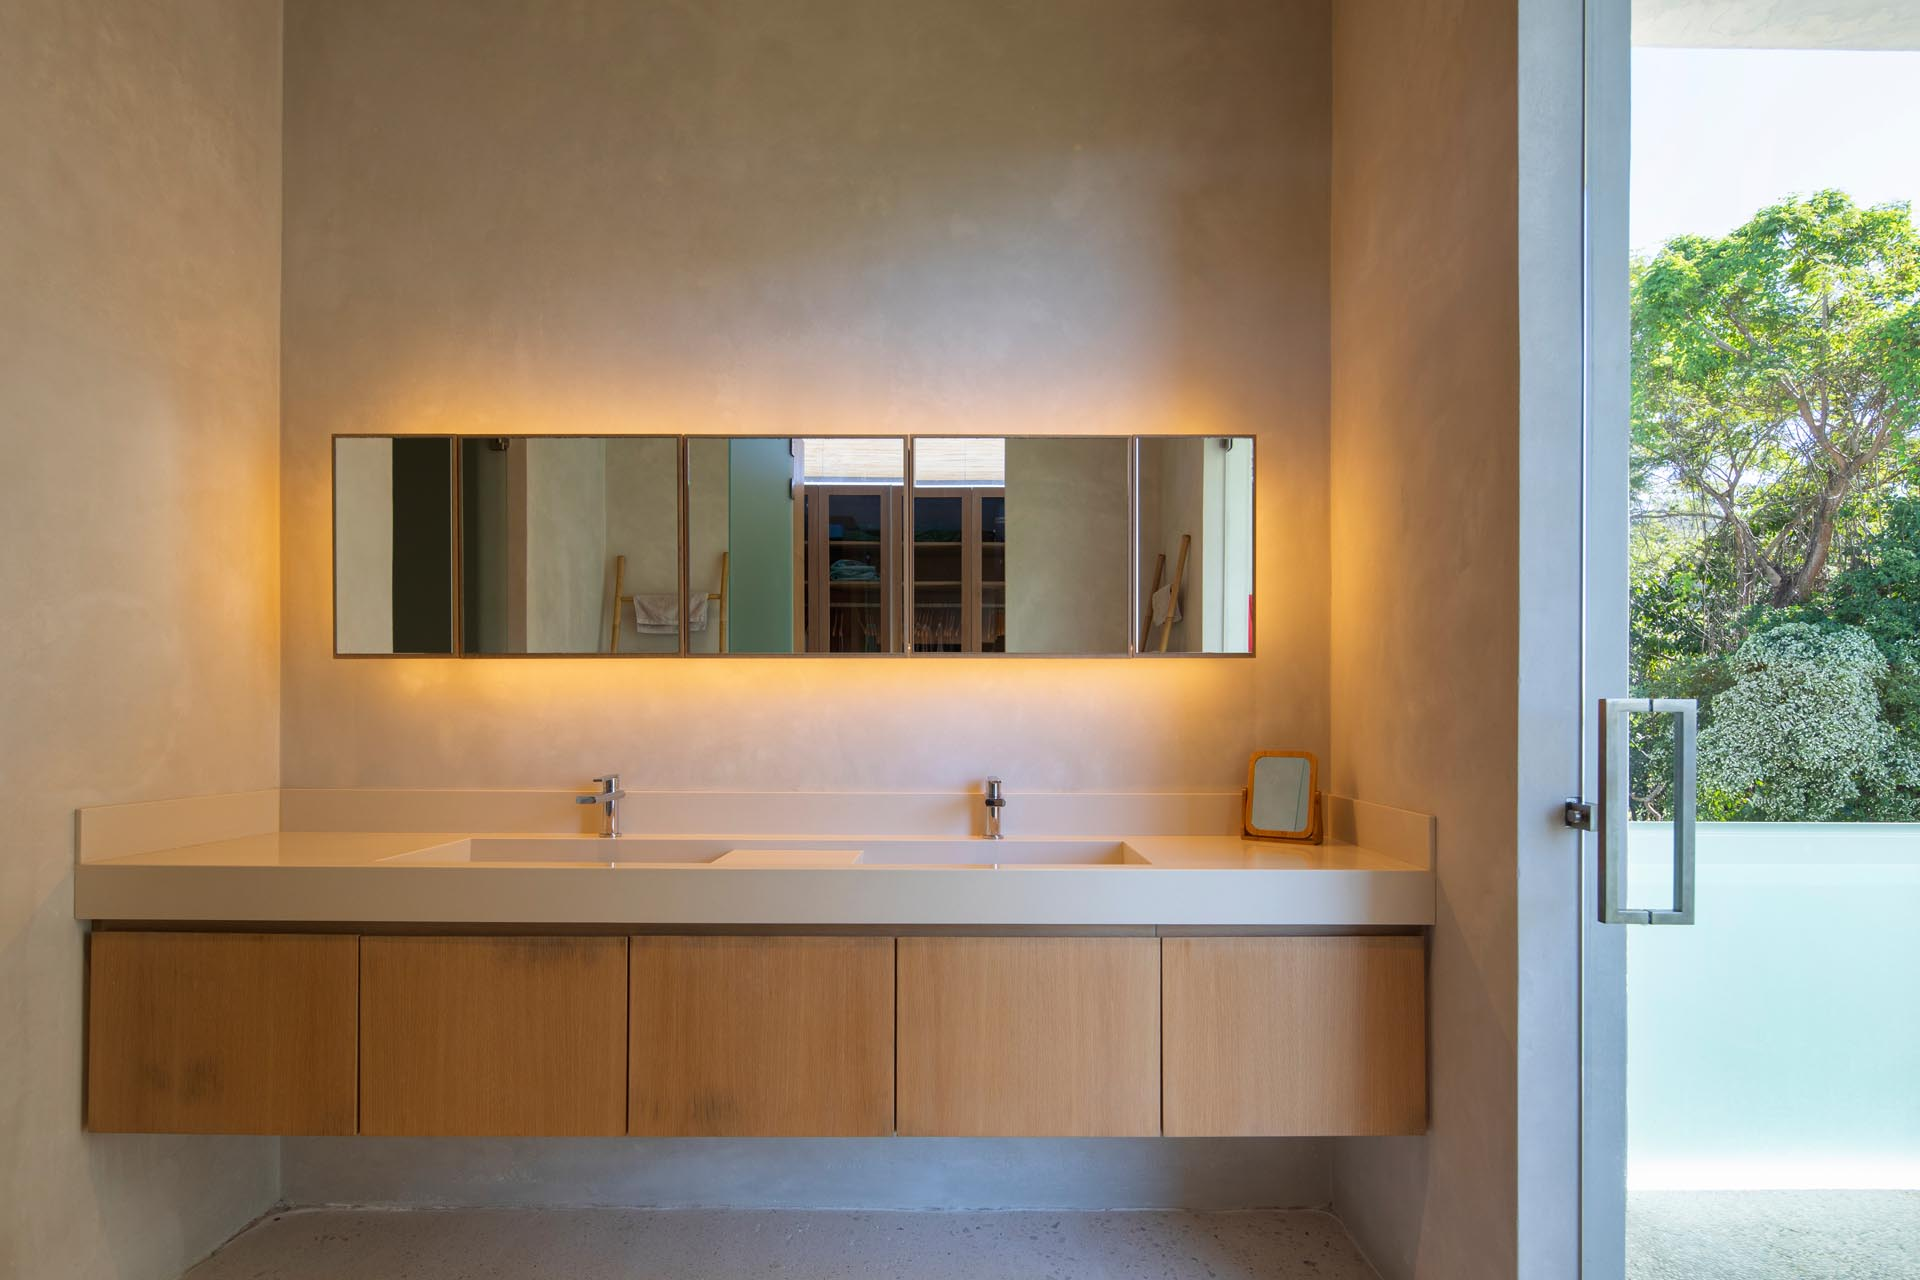 In this modern bathroom a floating wood vanity sits below a horizontal mirror that has a warm glow from the hidden lighting behind it.